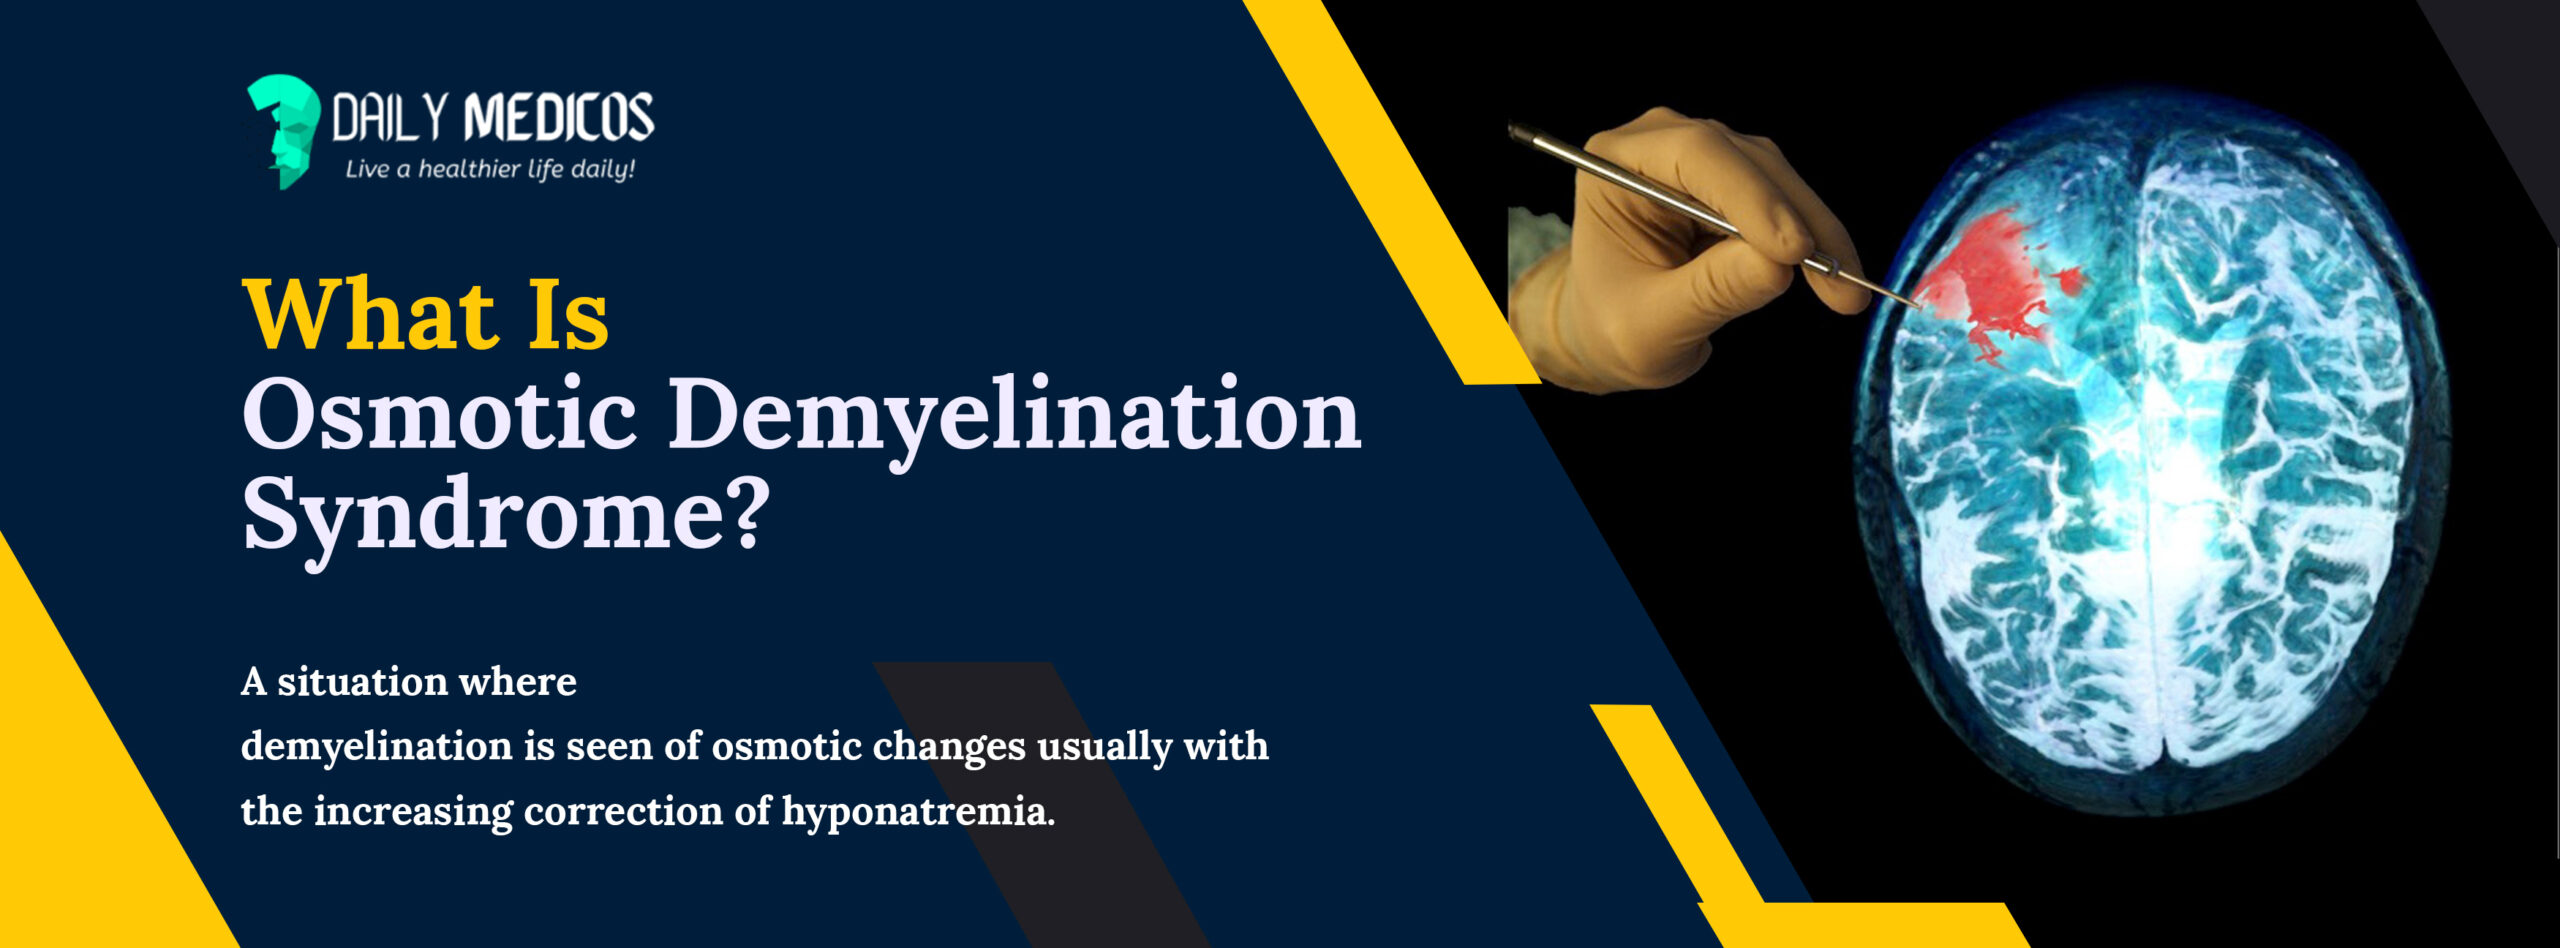 Osmotic Demyelination Syndrome: All You Need To Know 46 - Daily Medicos